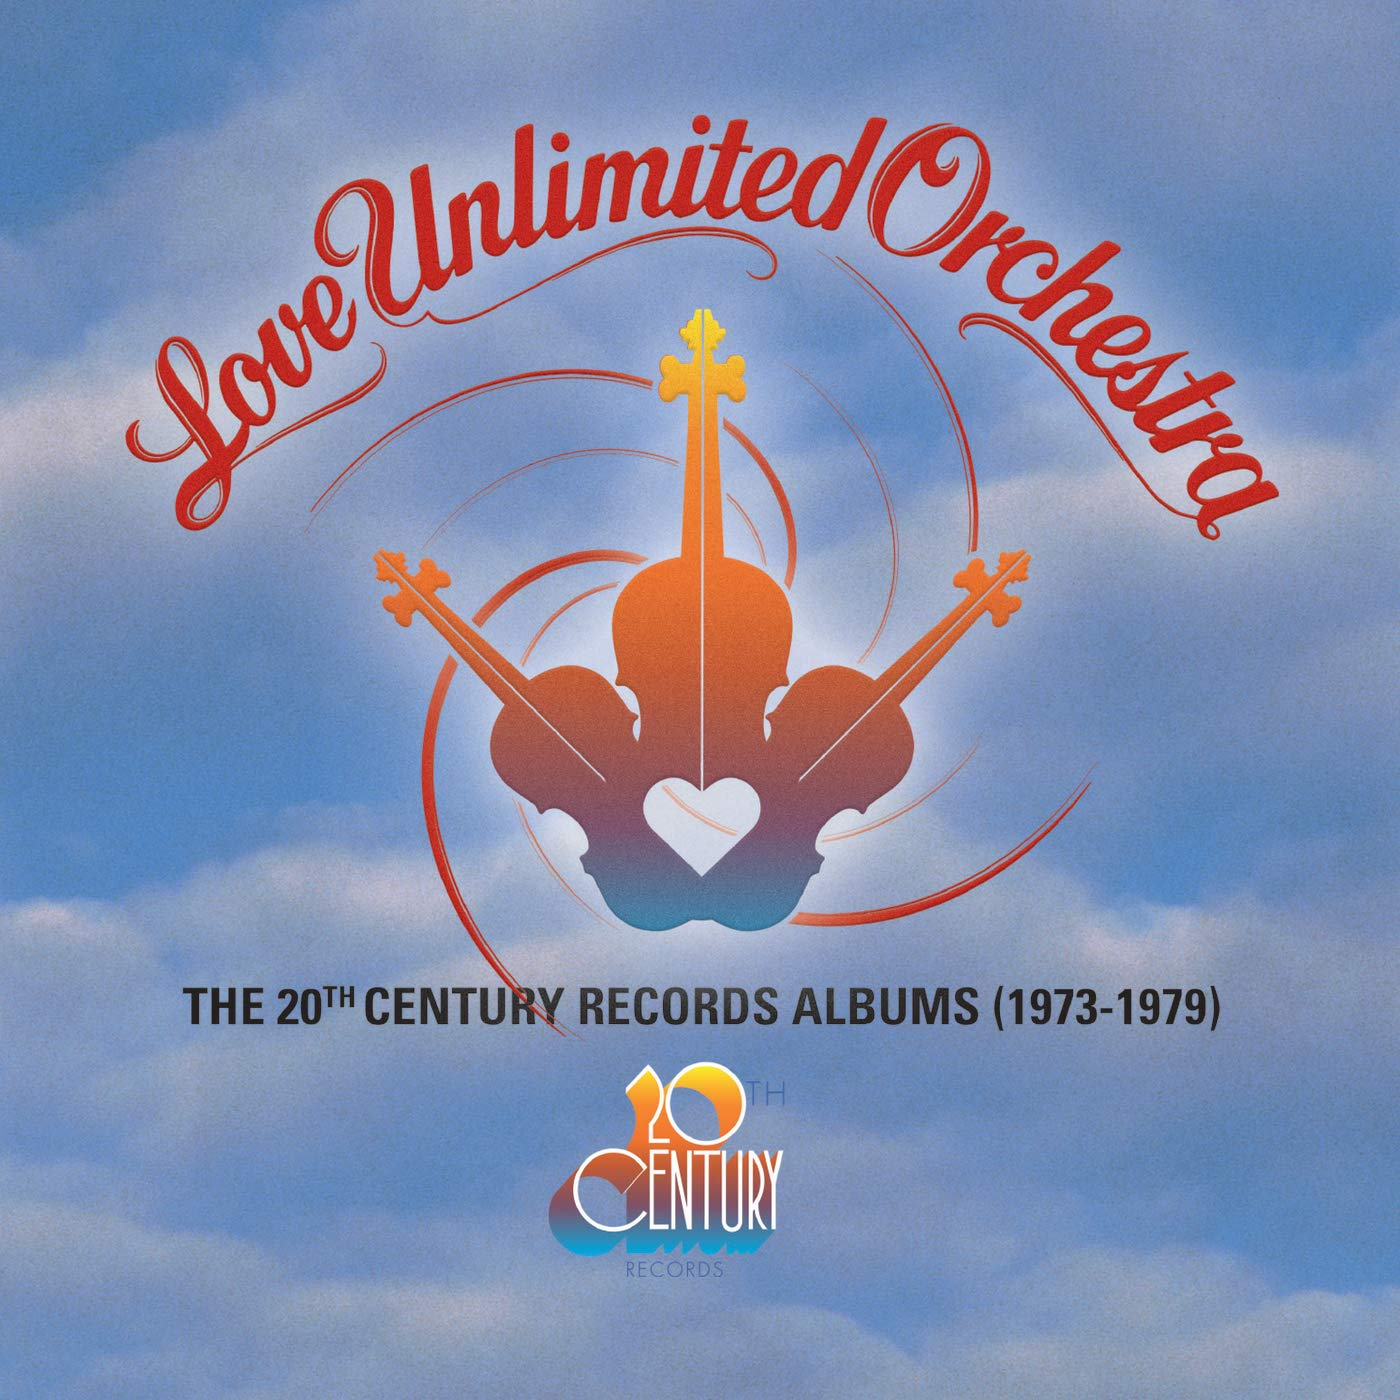 Love Unlimited Orchestra – The 20th Century Records Albums (1973-1979) (2019) [FLAC]